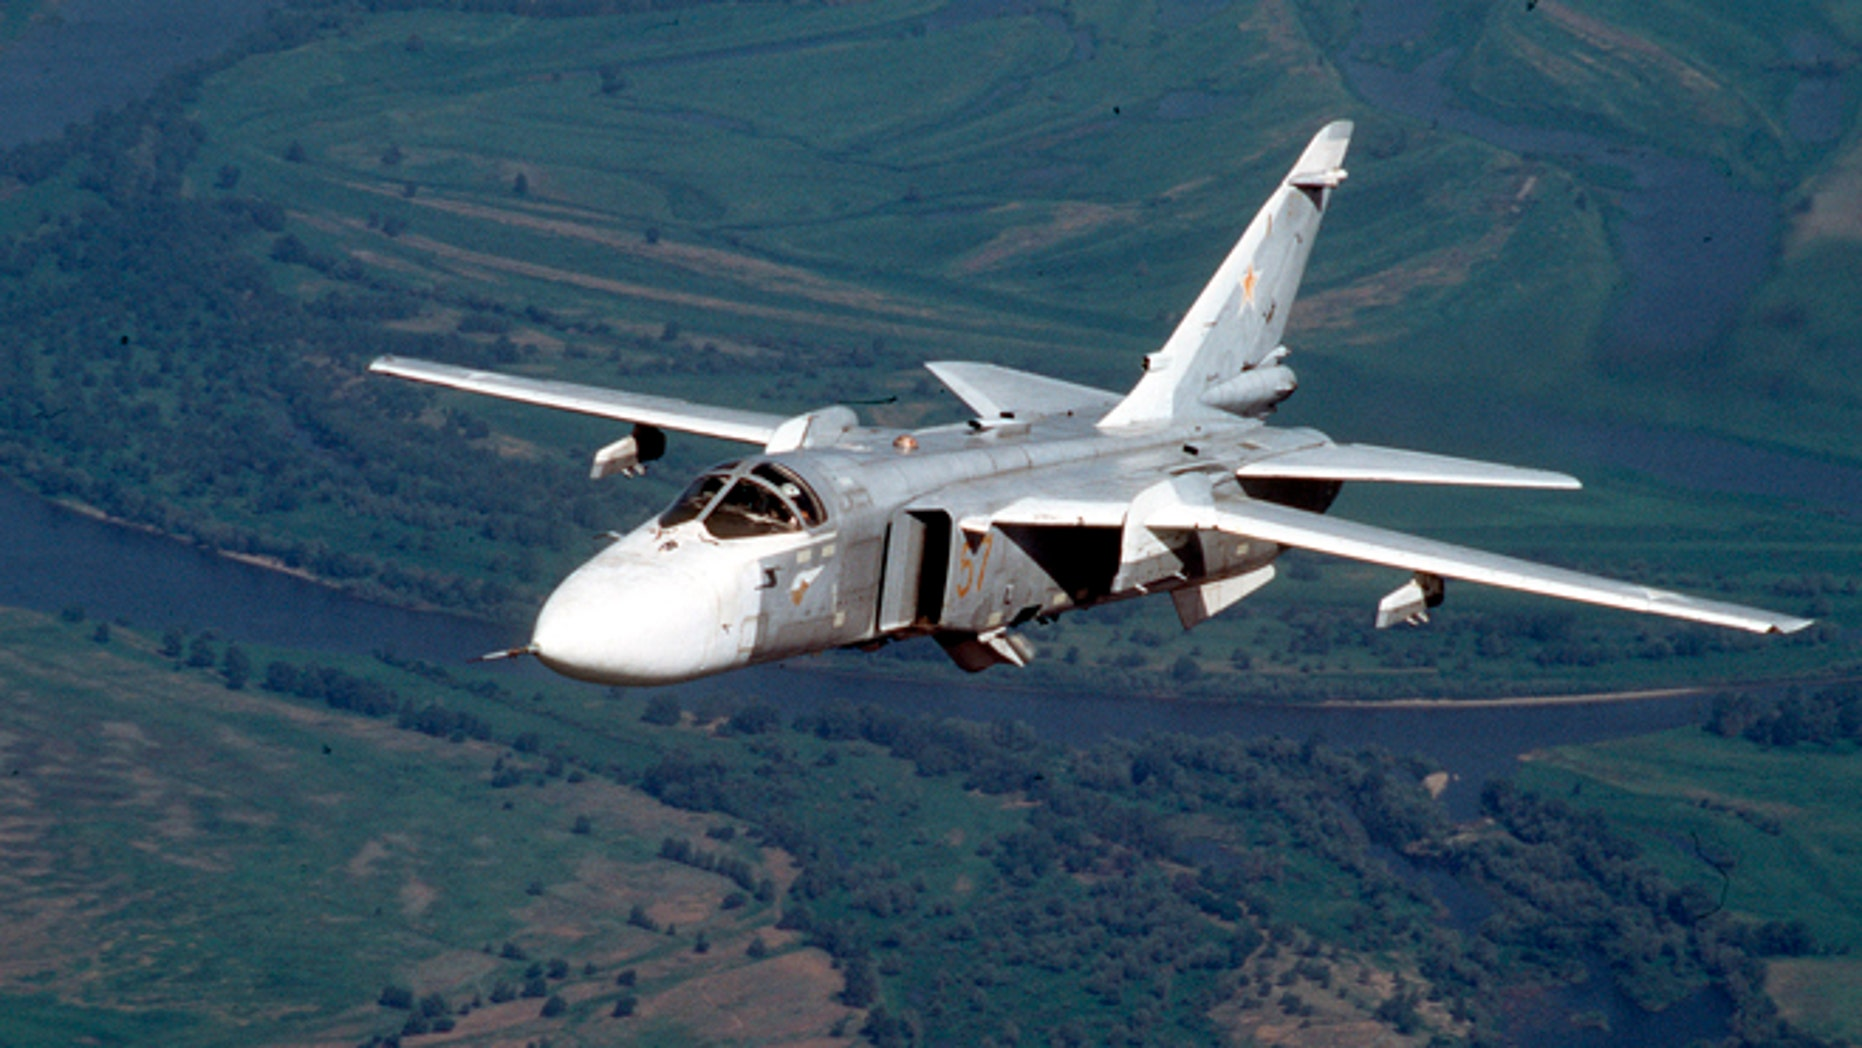 A Russian Su-24 medium-range bomber, in a 2002 file photo.